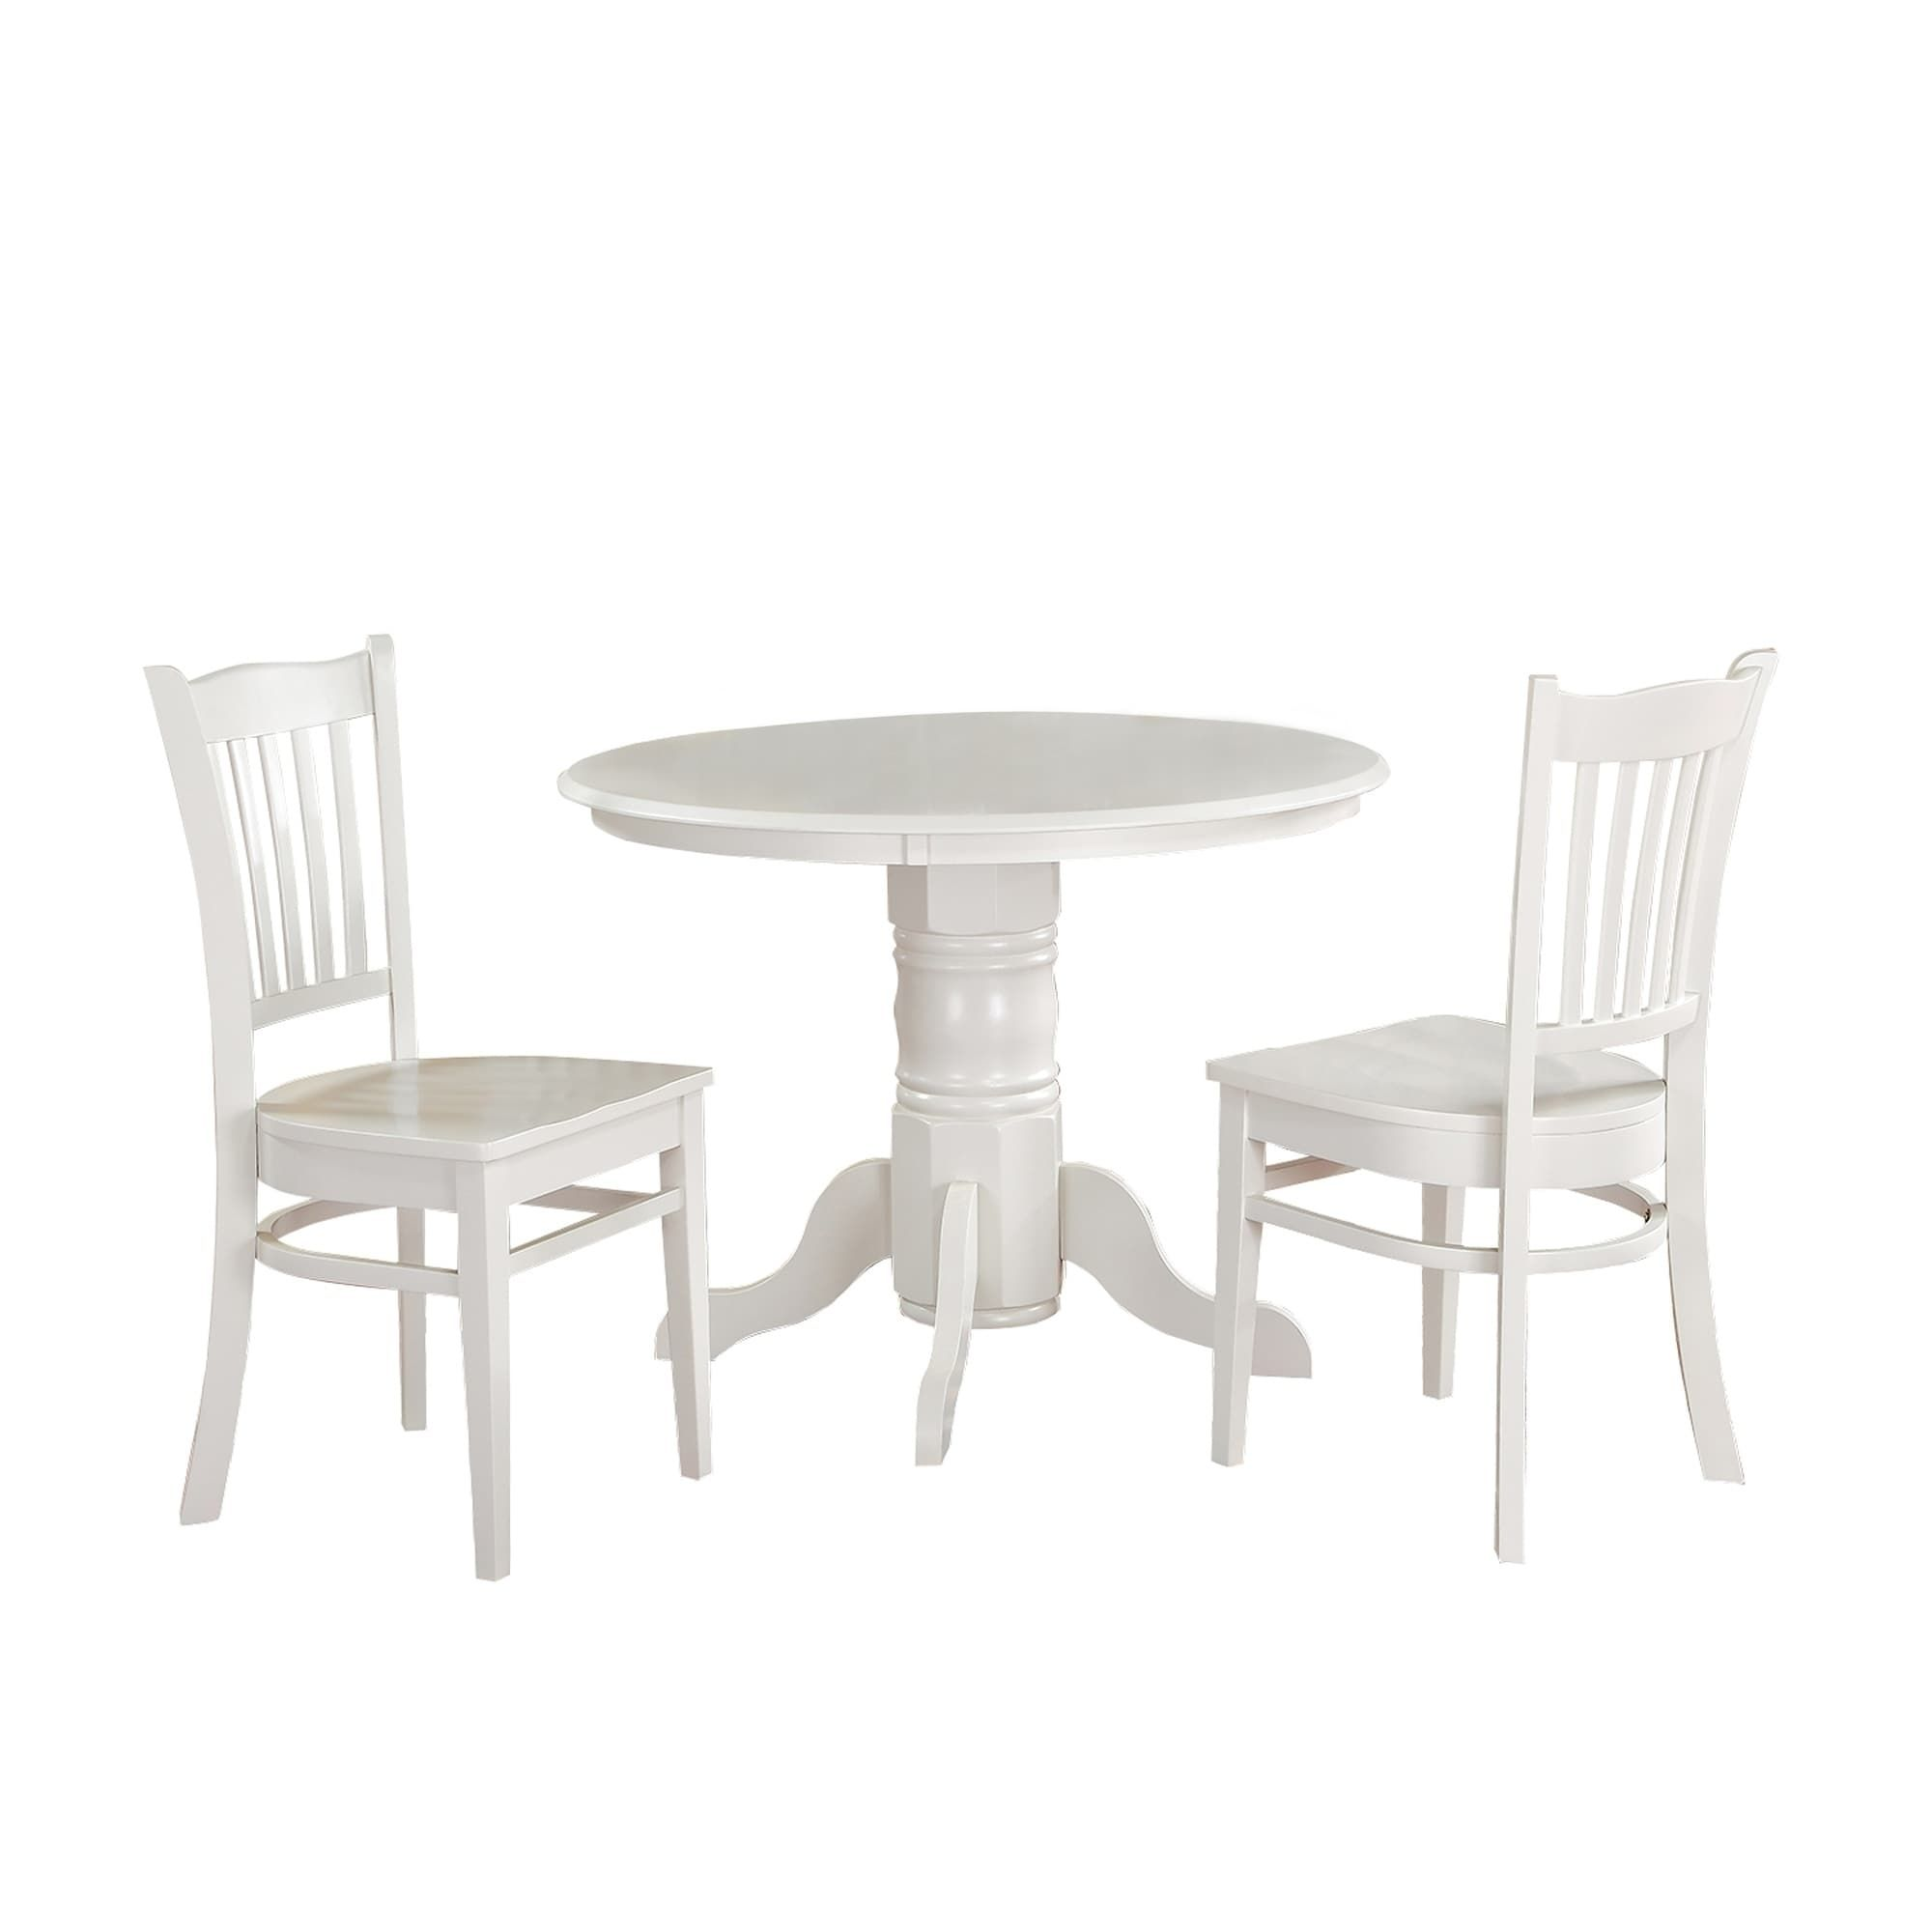 Ttp furnish piece solid wood dining set